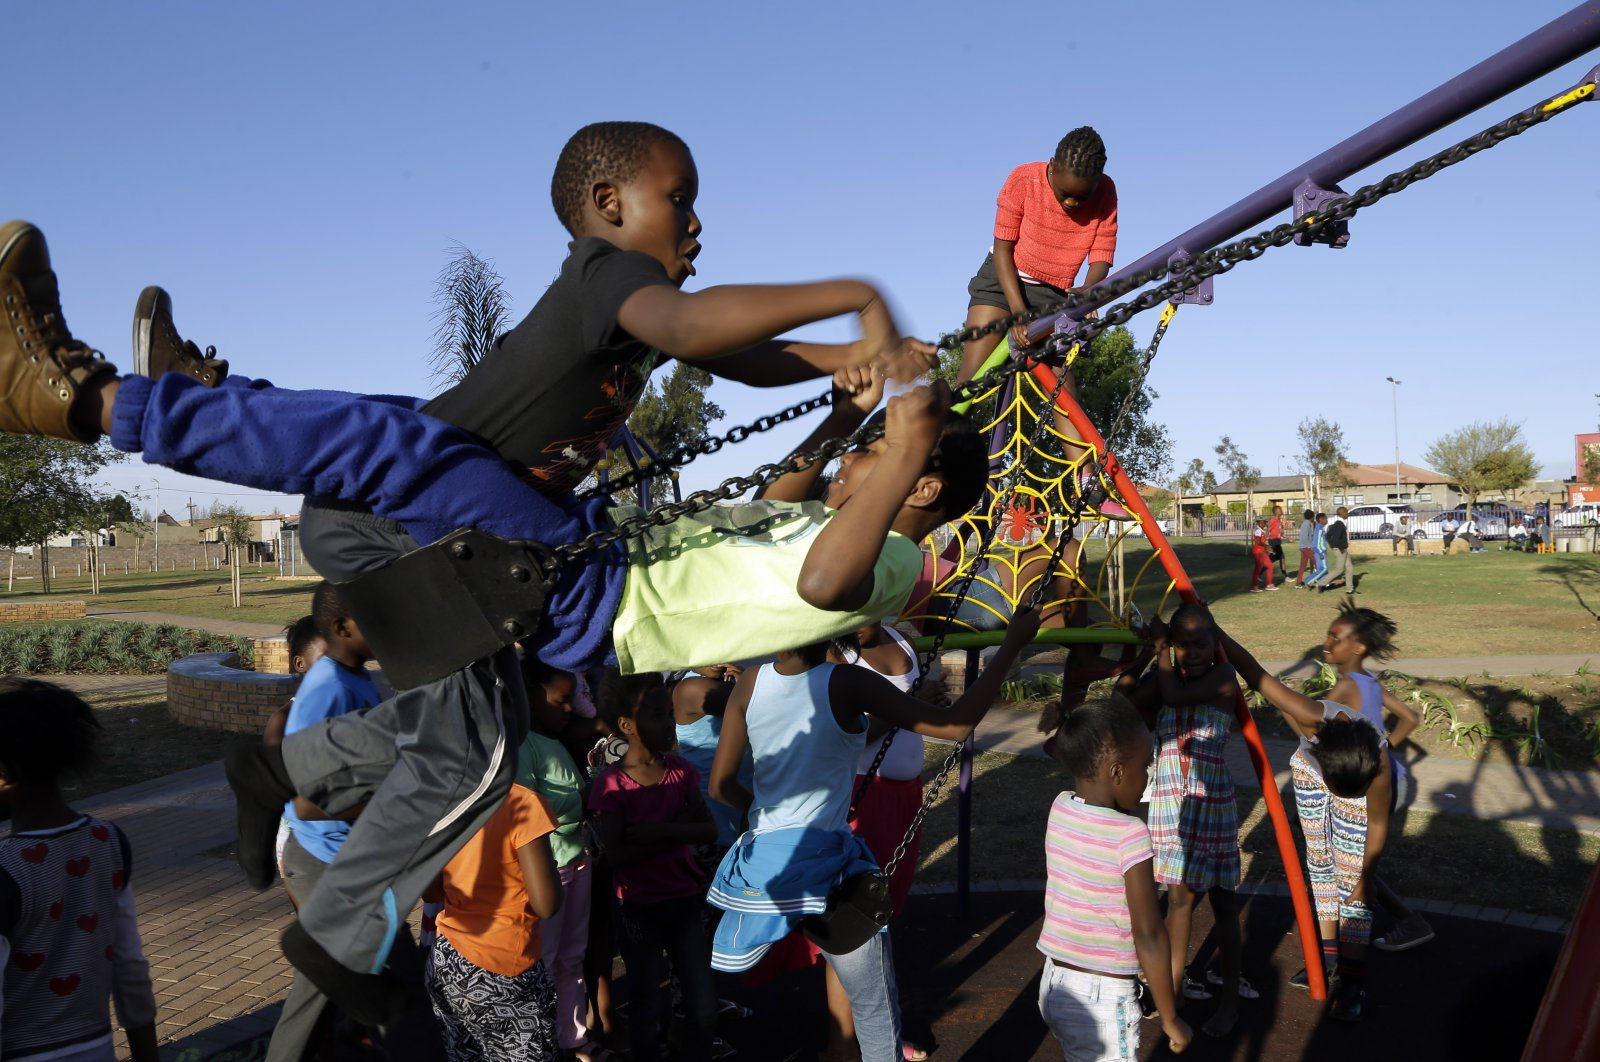 Children play on a swing at the newly built Meadowlands Park in Soweto, South Africa, Sept. 2, 2015. (AP Photo)